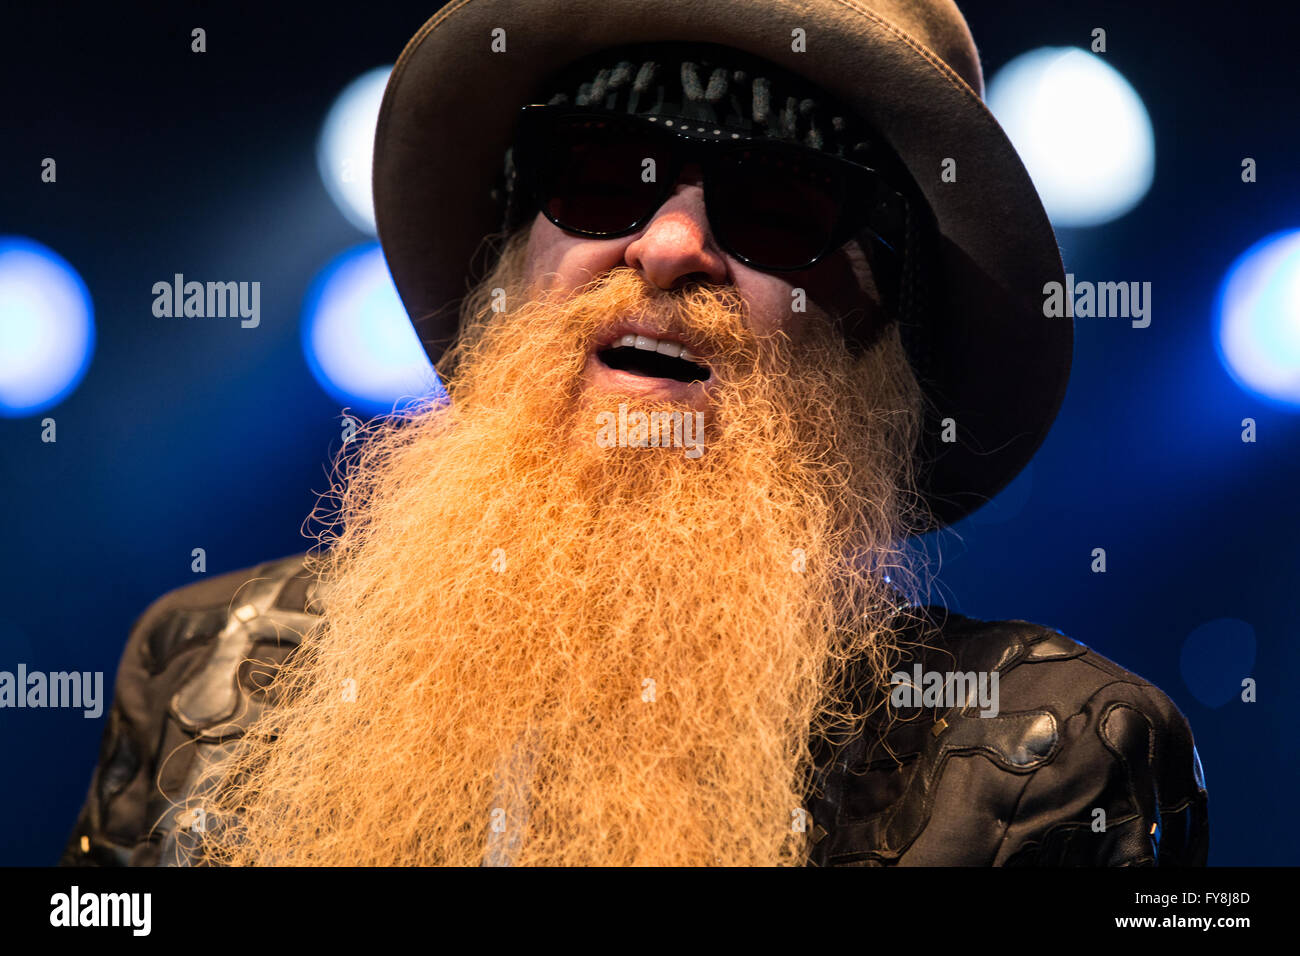 Billy Gibbons of ZZ Top @ Abbotsford Centre in Abbotsford, BC on April 7th 2016 - Stock Image